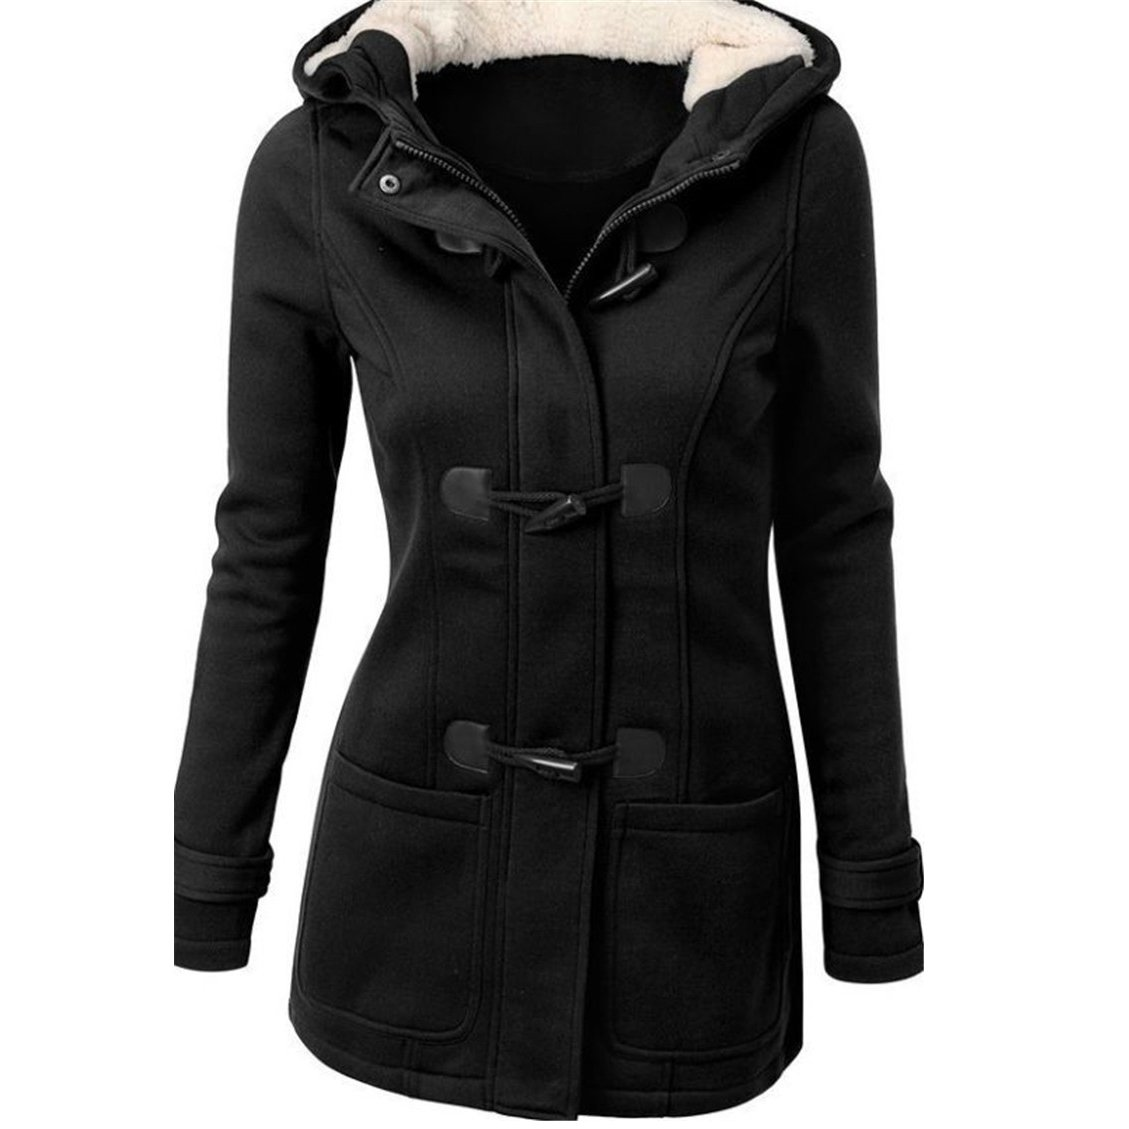 YOUR GALLERY Women's Fleece Horn Button Jacket Coat Slim Fit Hooded Tracksuit Overcoat,Black-4XL by Your Gallery